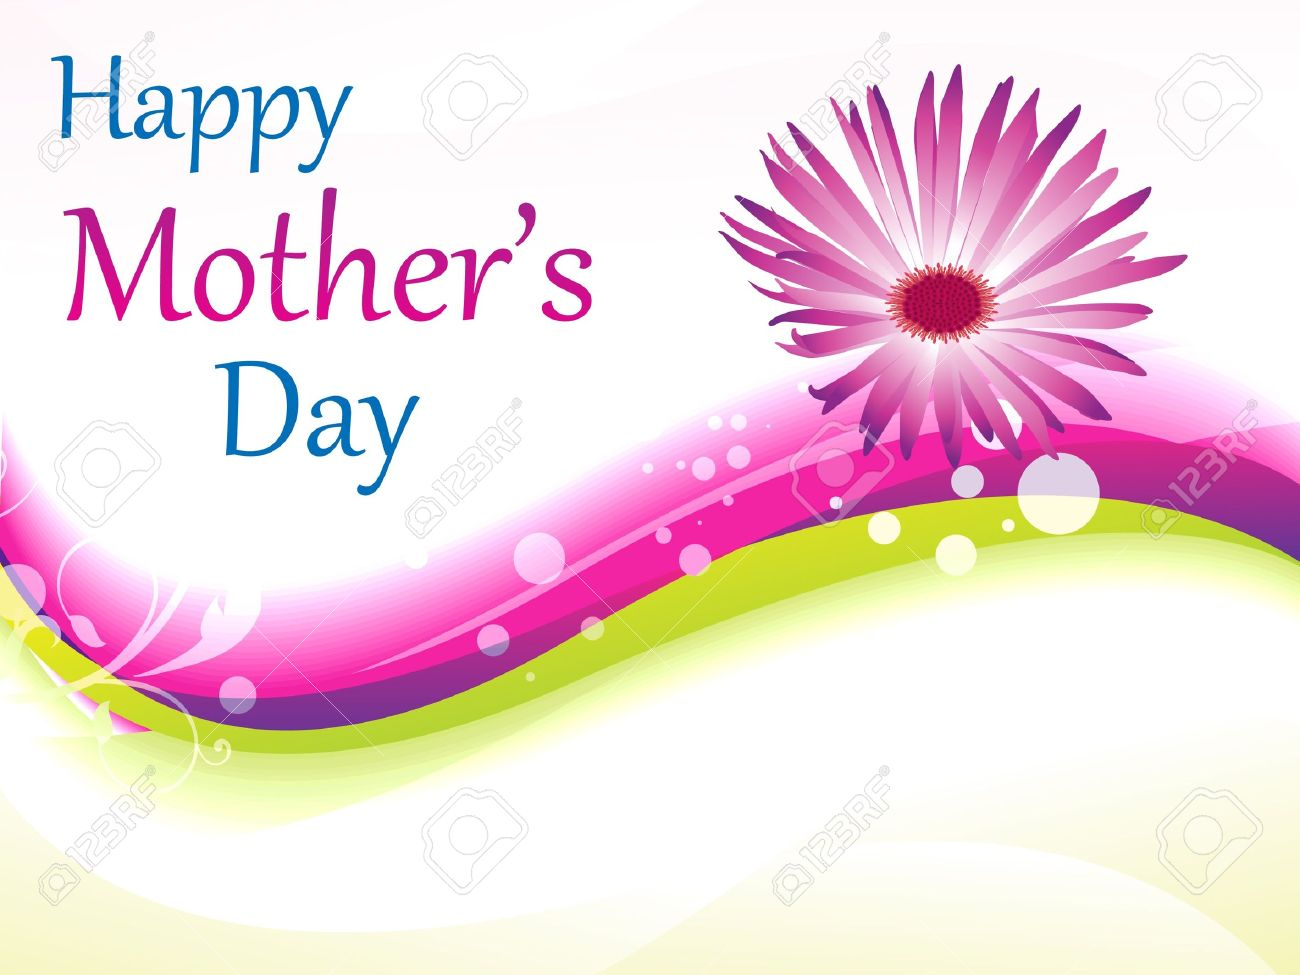 Abstract Mother's Day Background Vector Illustration Royalty Free